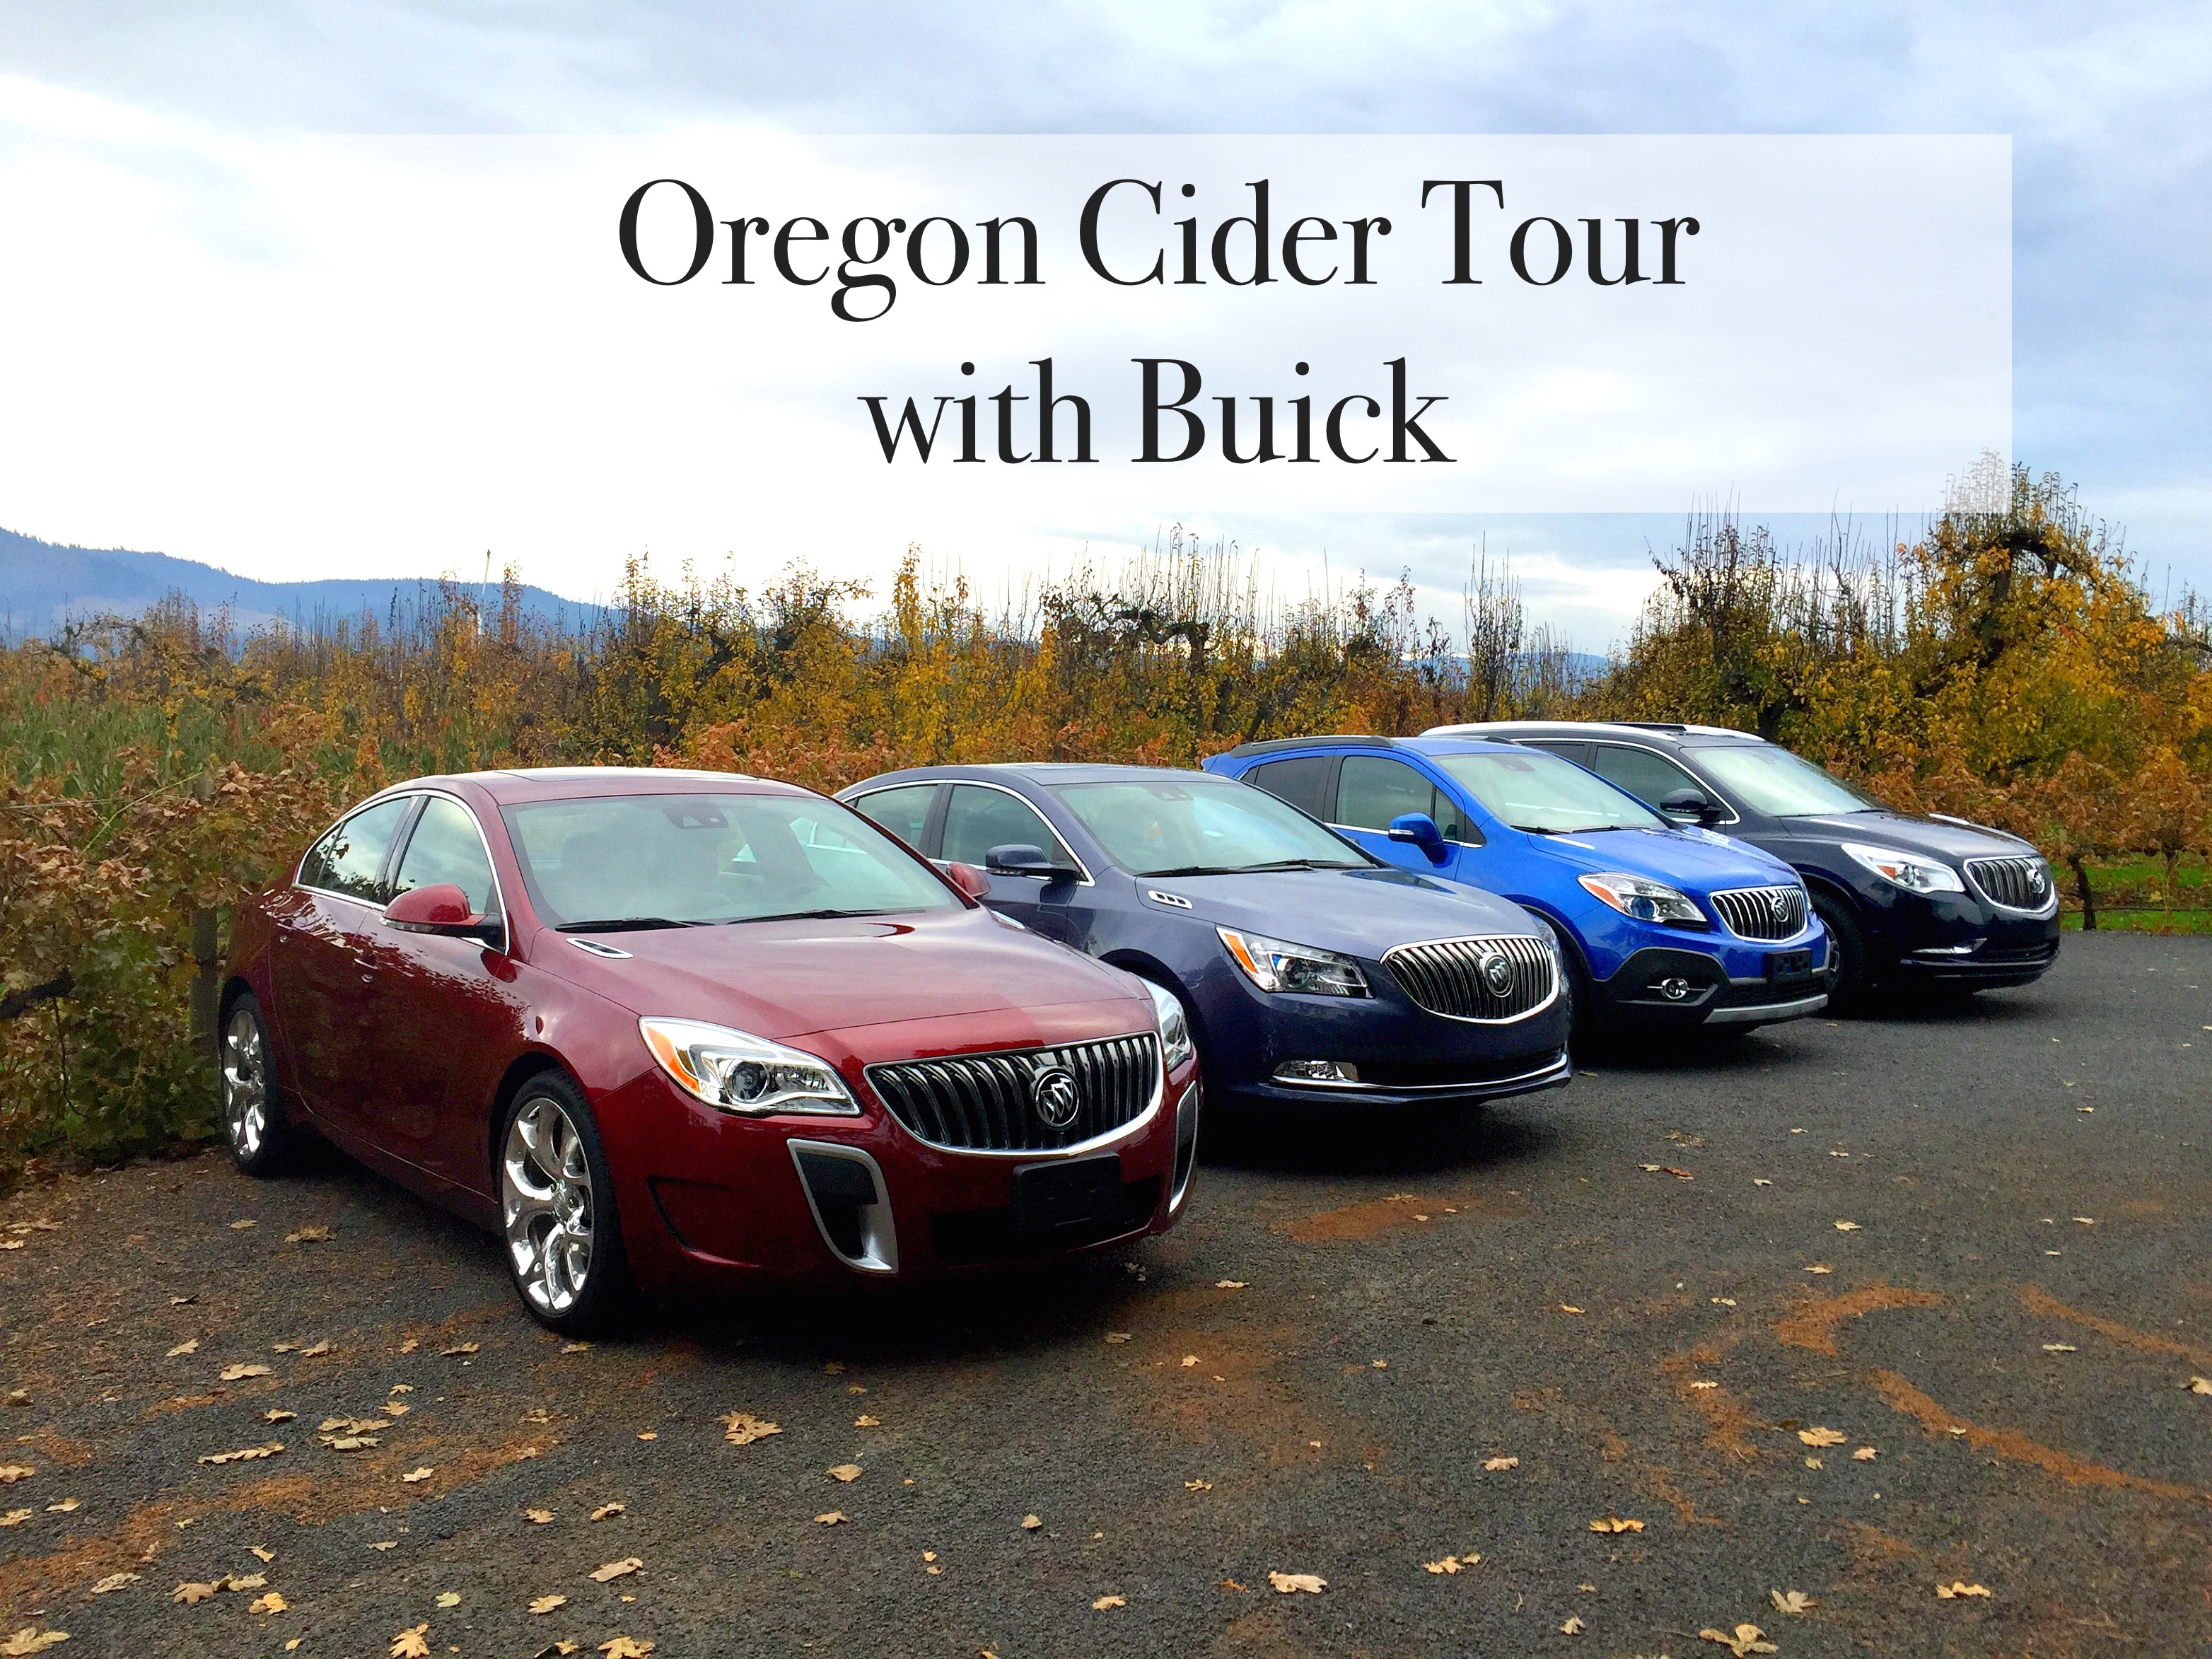 2015_11_7_buickcidertour-cars